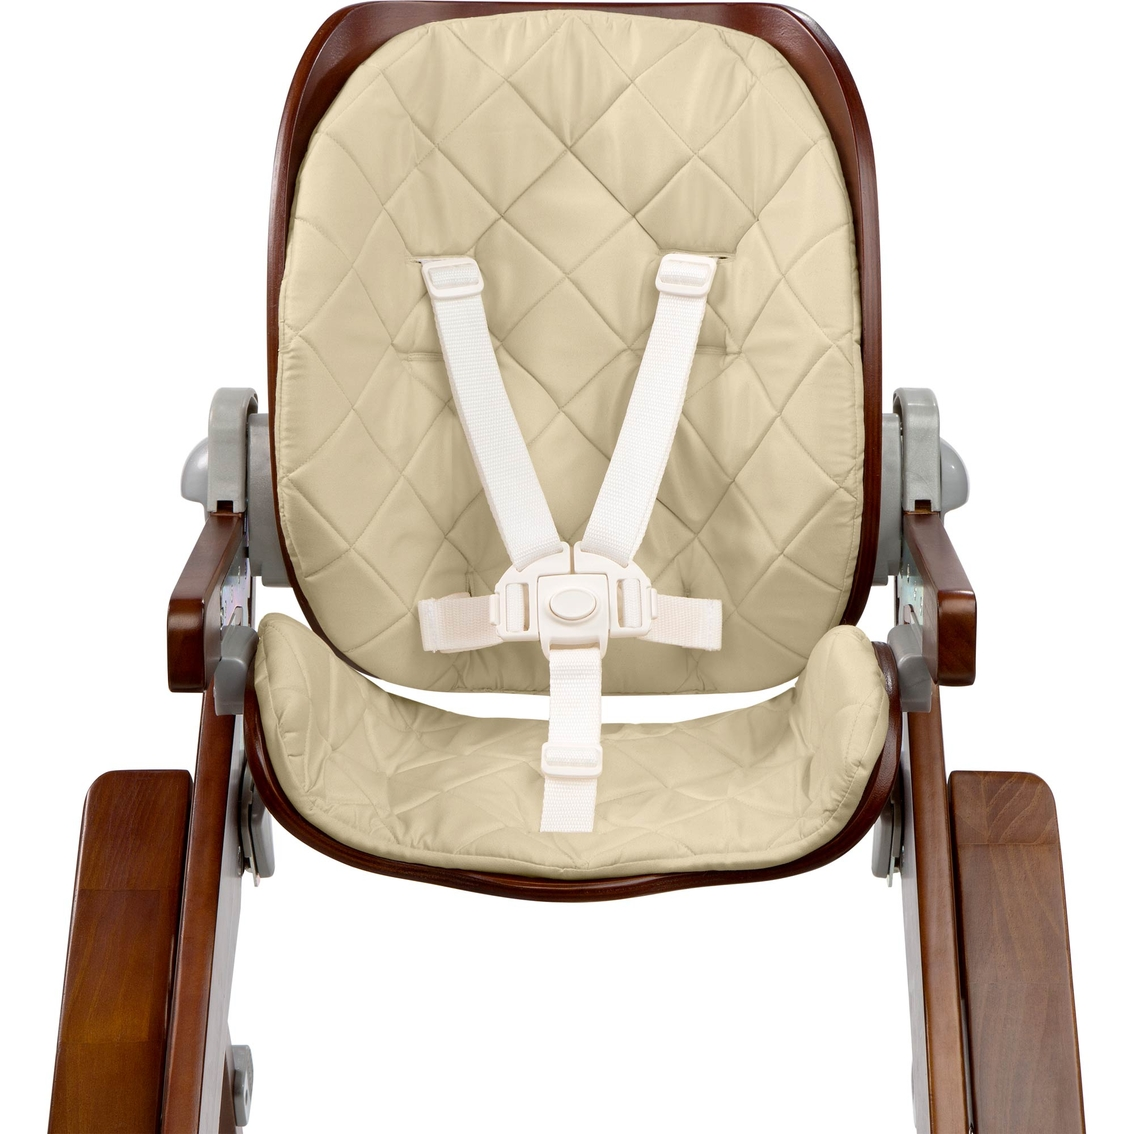 Delicieux Summer Infant Bentwood Highchair Replacement Pad